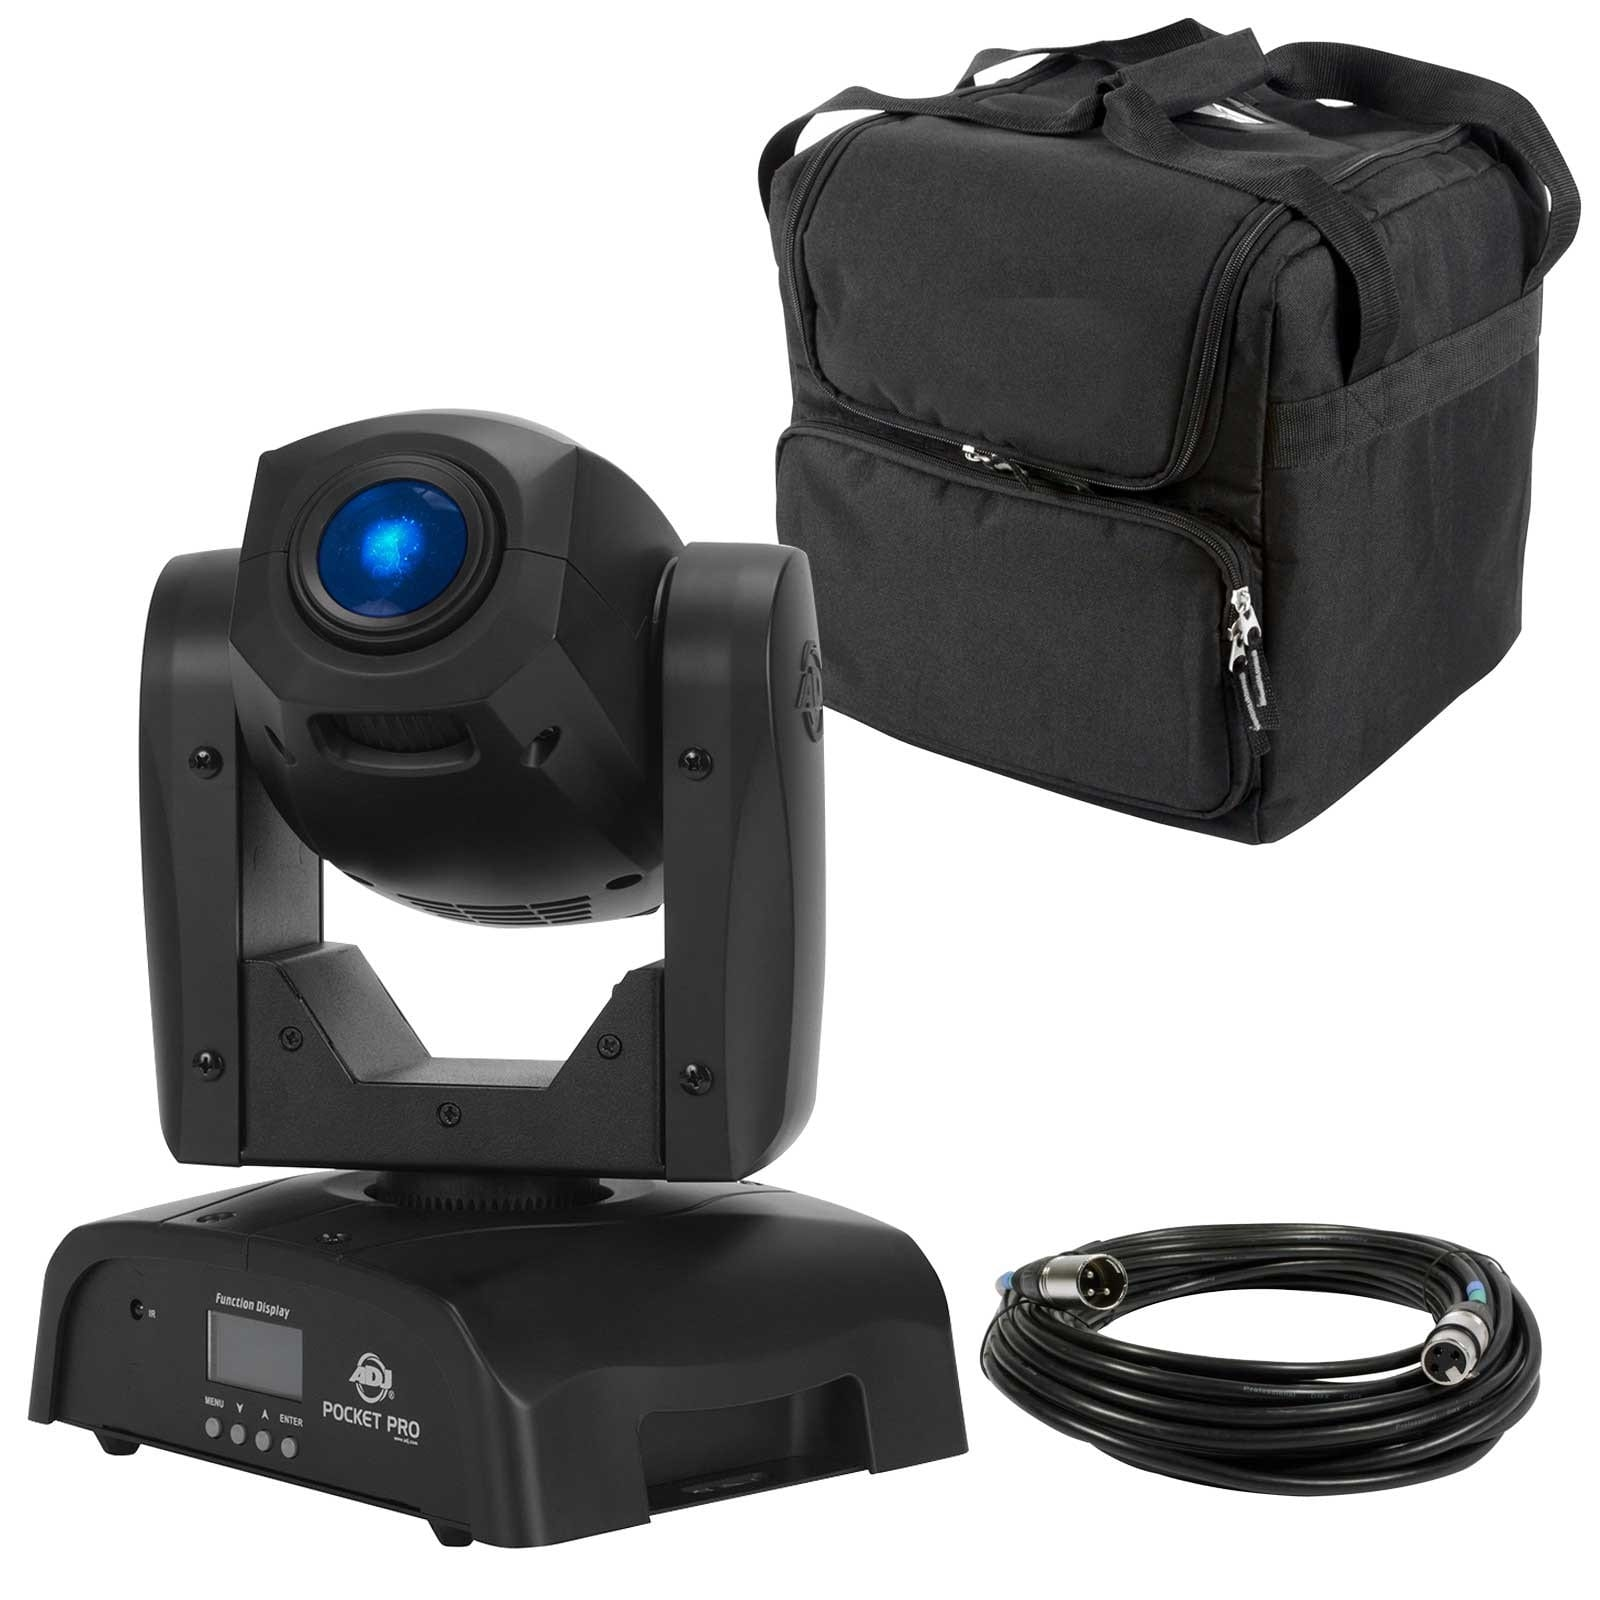 american-dj-pocket-pro-high-output-mini-moving-head-with-carry-bag-package-646.jpg